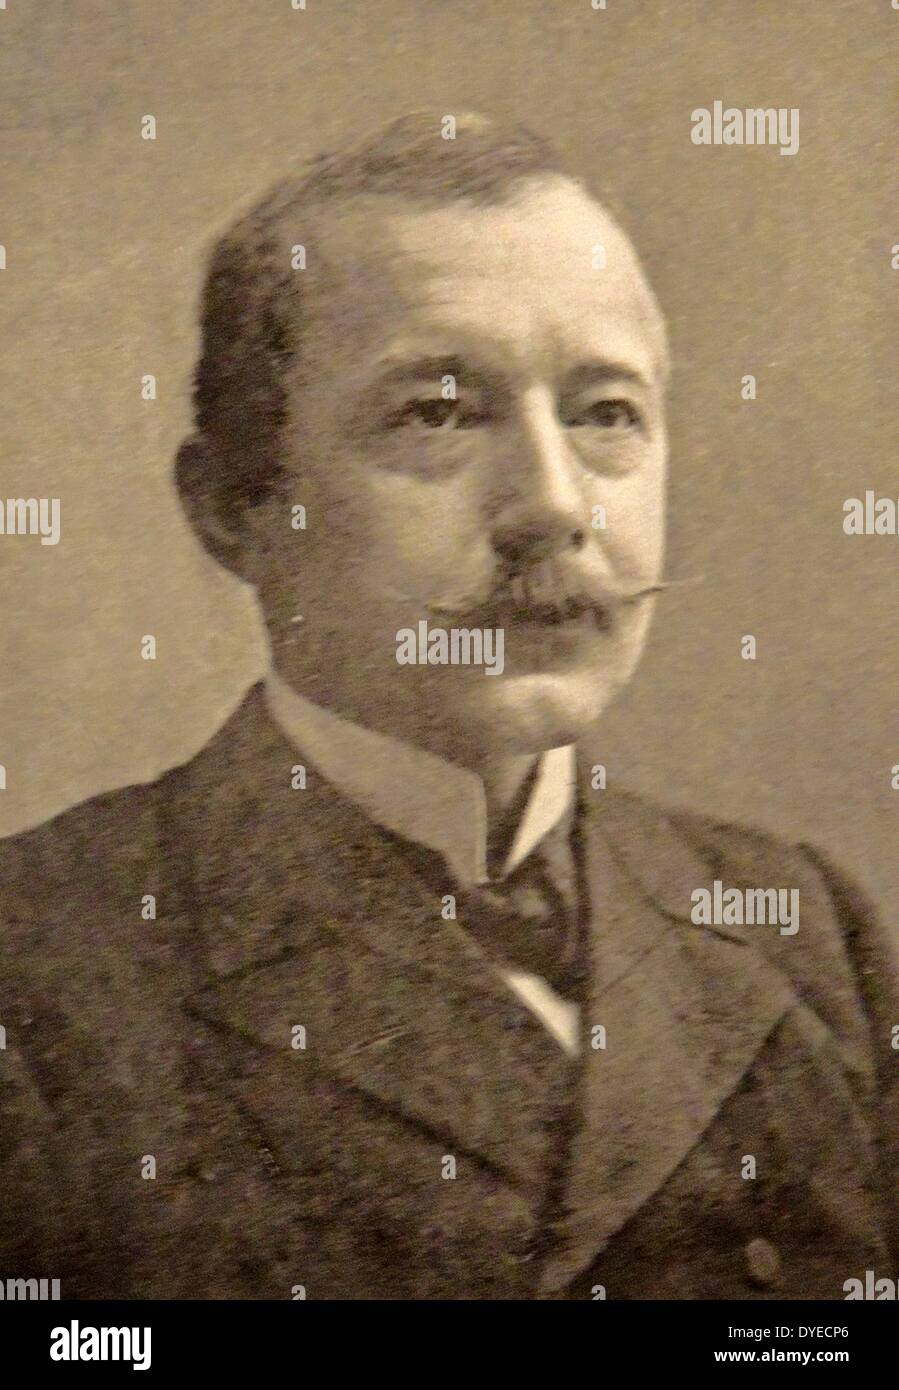 Portrait of Georg Stang. - Stock Image